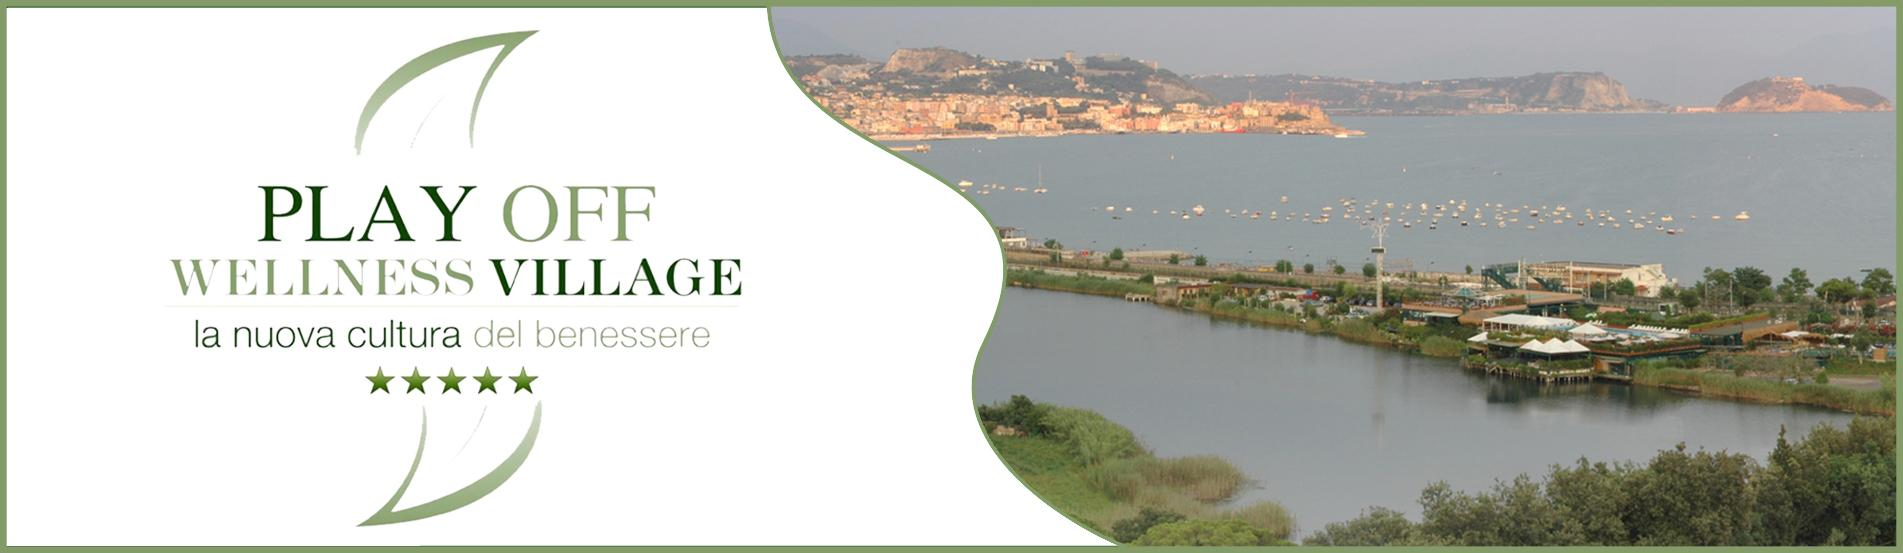 volantino-Play Off Wellness Village e un lago